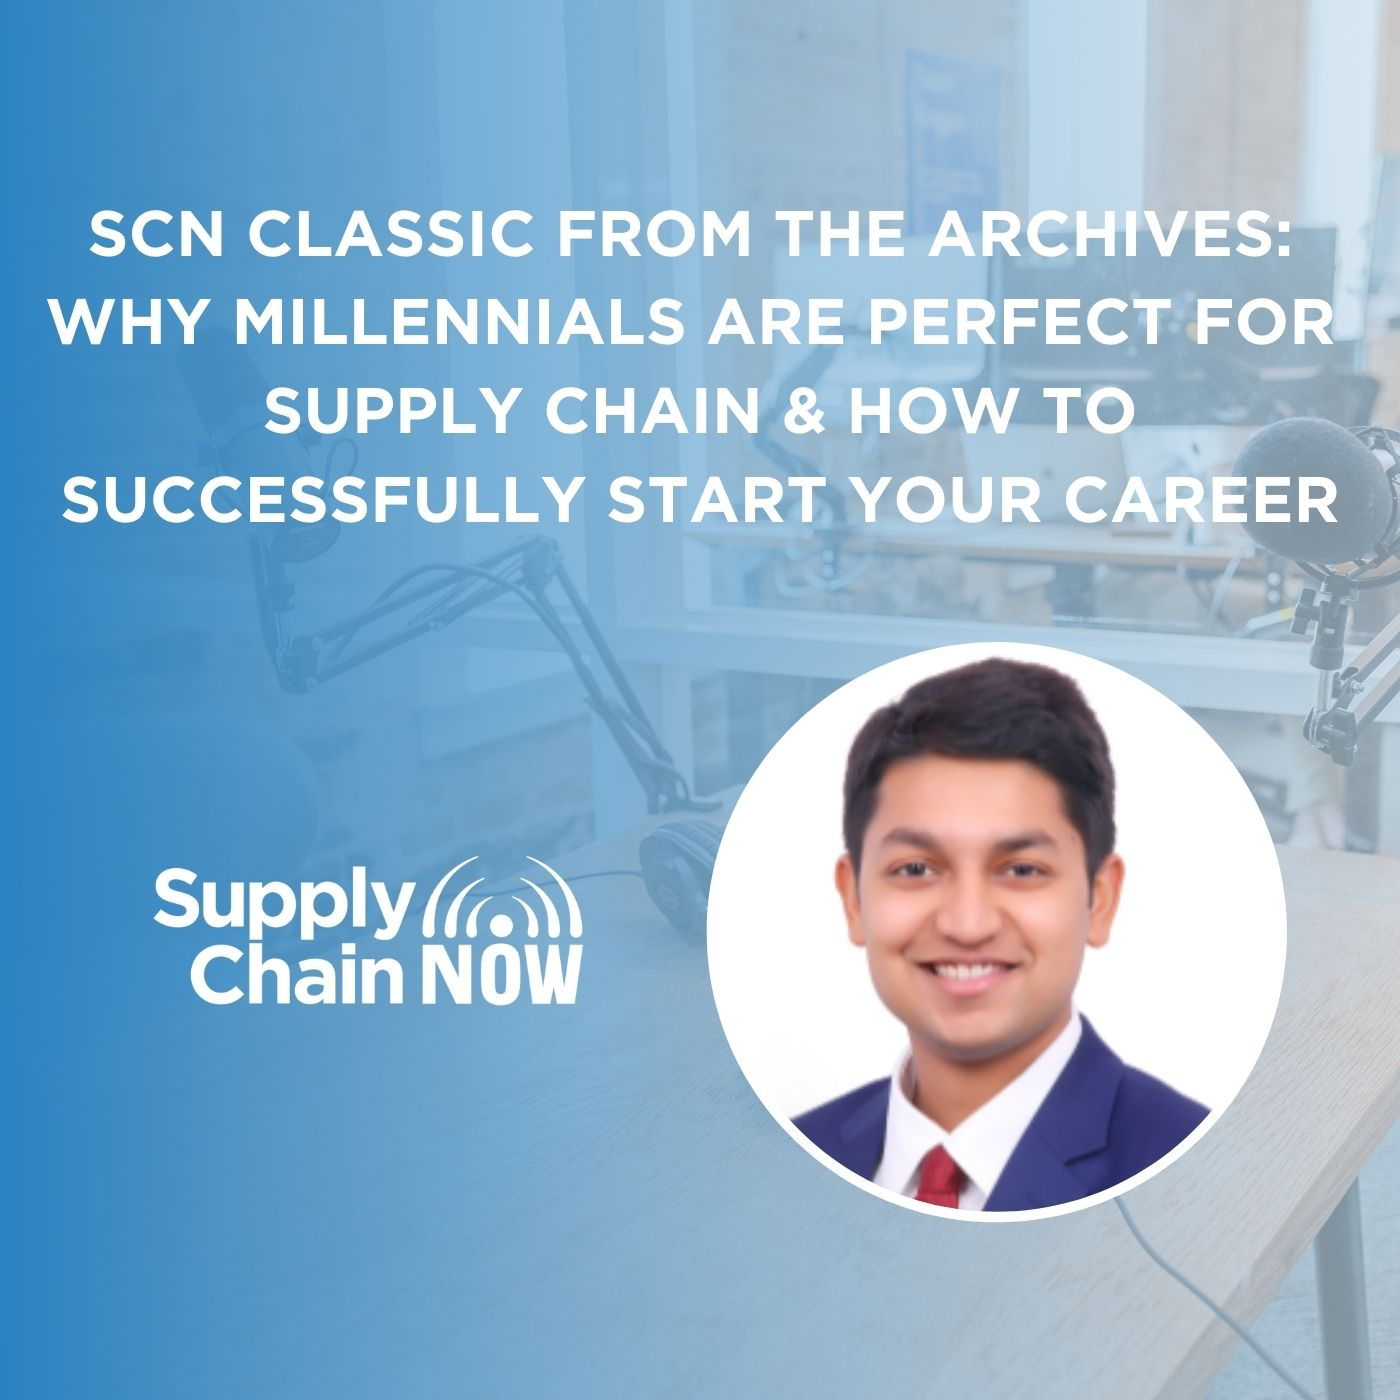 SCN Classic from the Archives: Why Millennials are Perfect for Supply Chain & How To Successfully Start Your Career